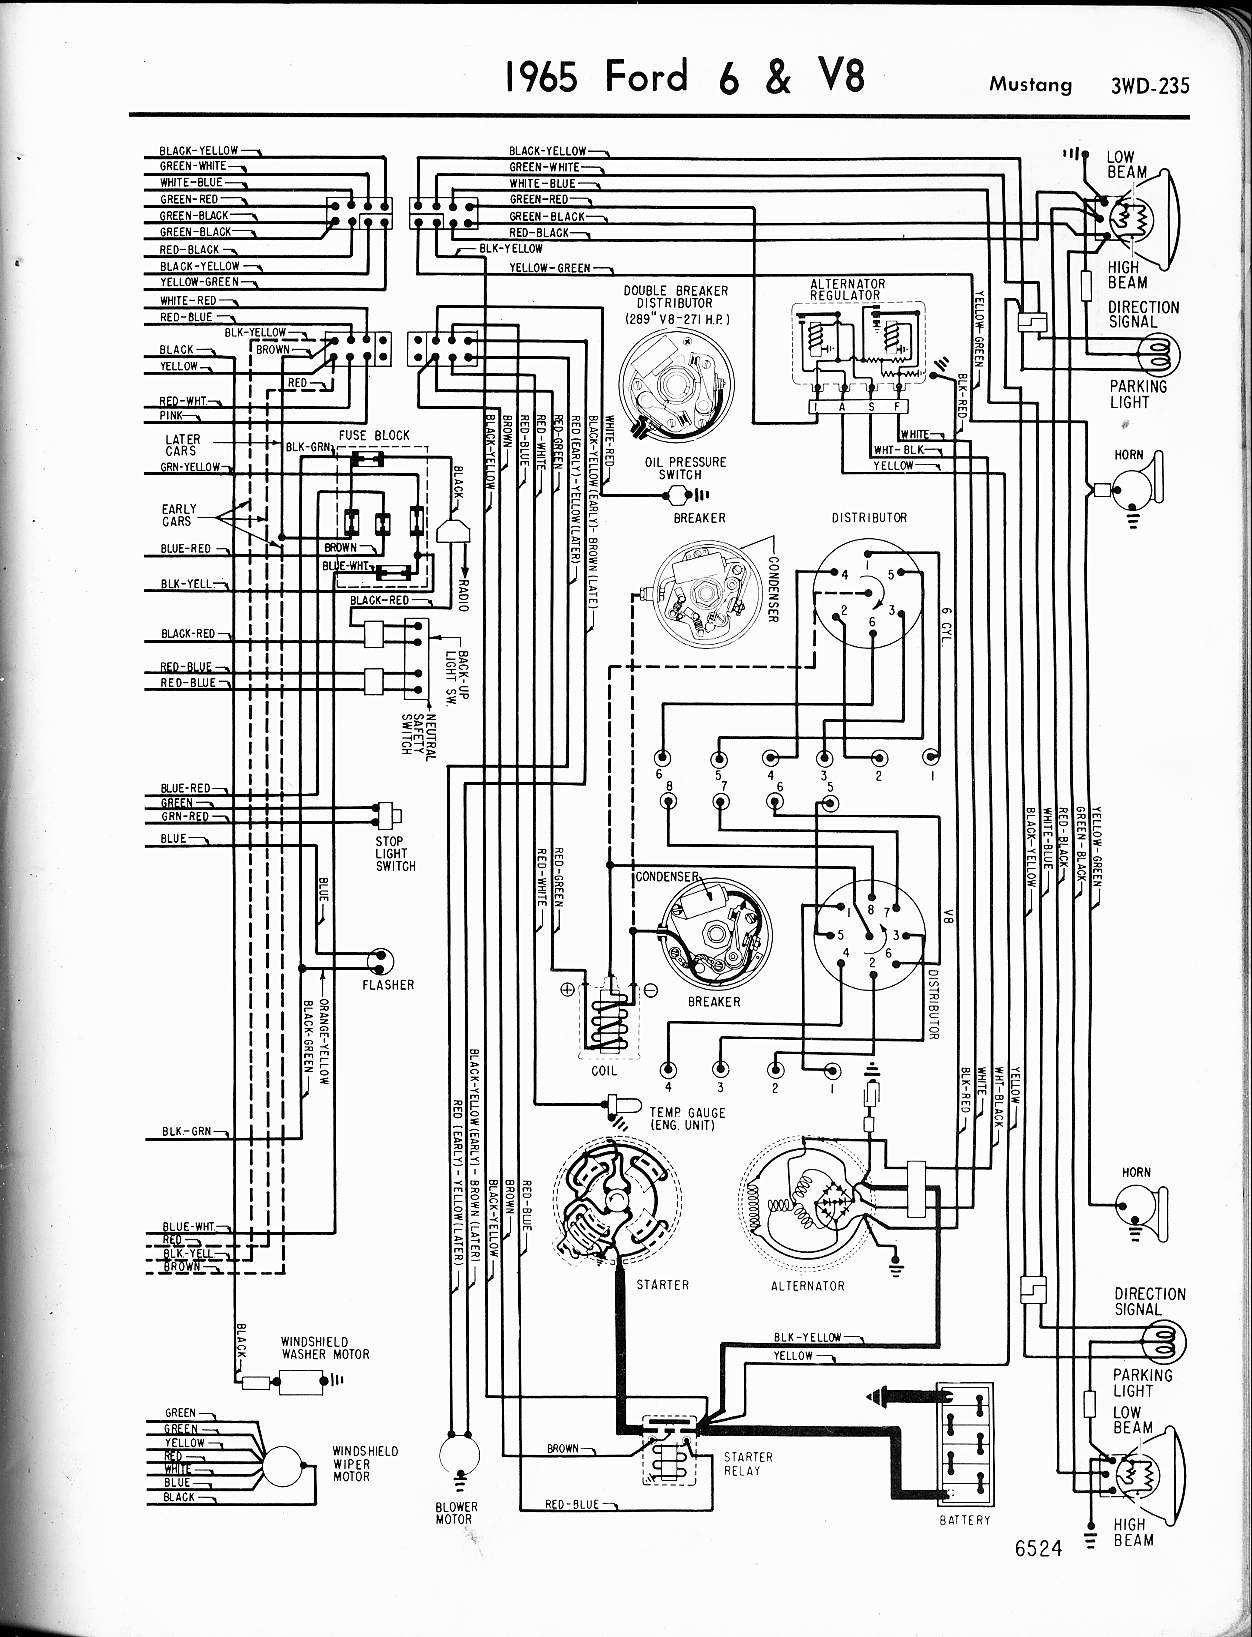 1965_mustang_wiring_2 69 mustang wiring diagram 1969 ford f100 wiring diagram \u2022 wiring  at webbmarketing.co